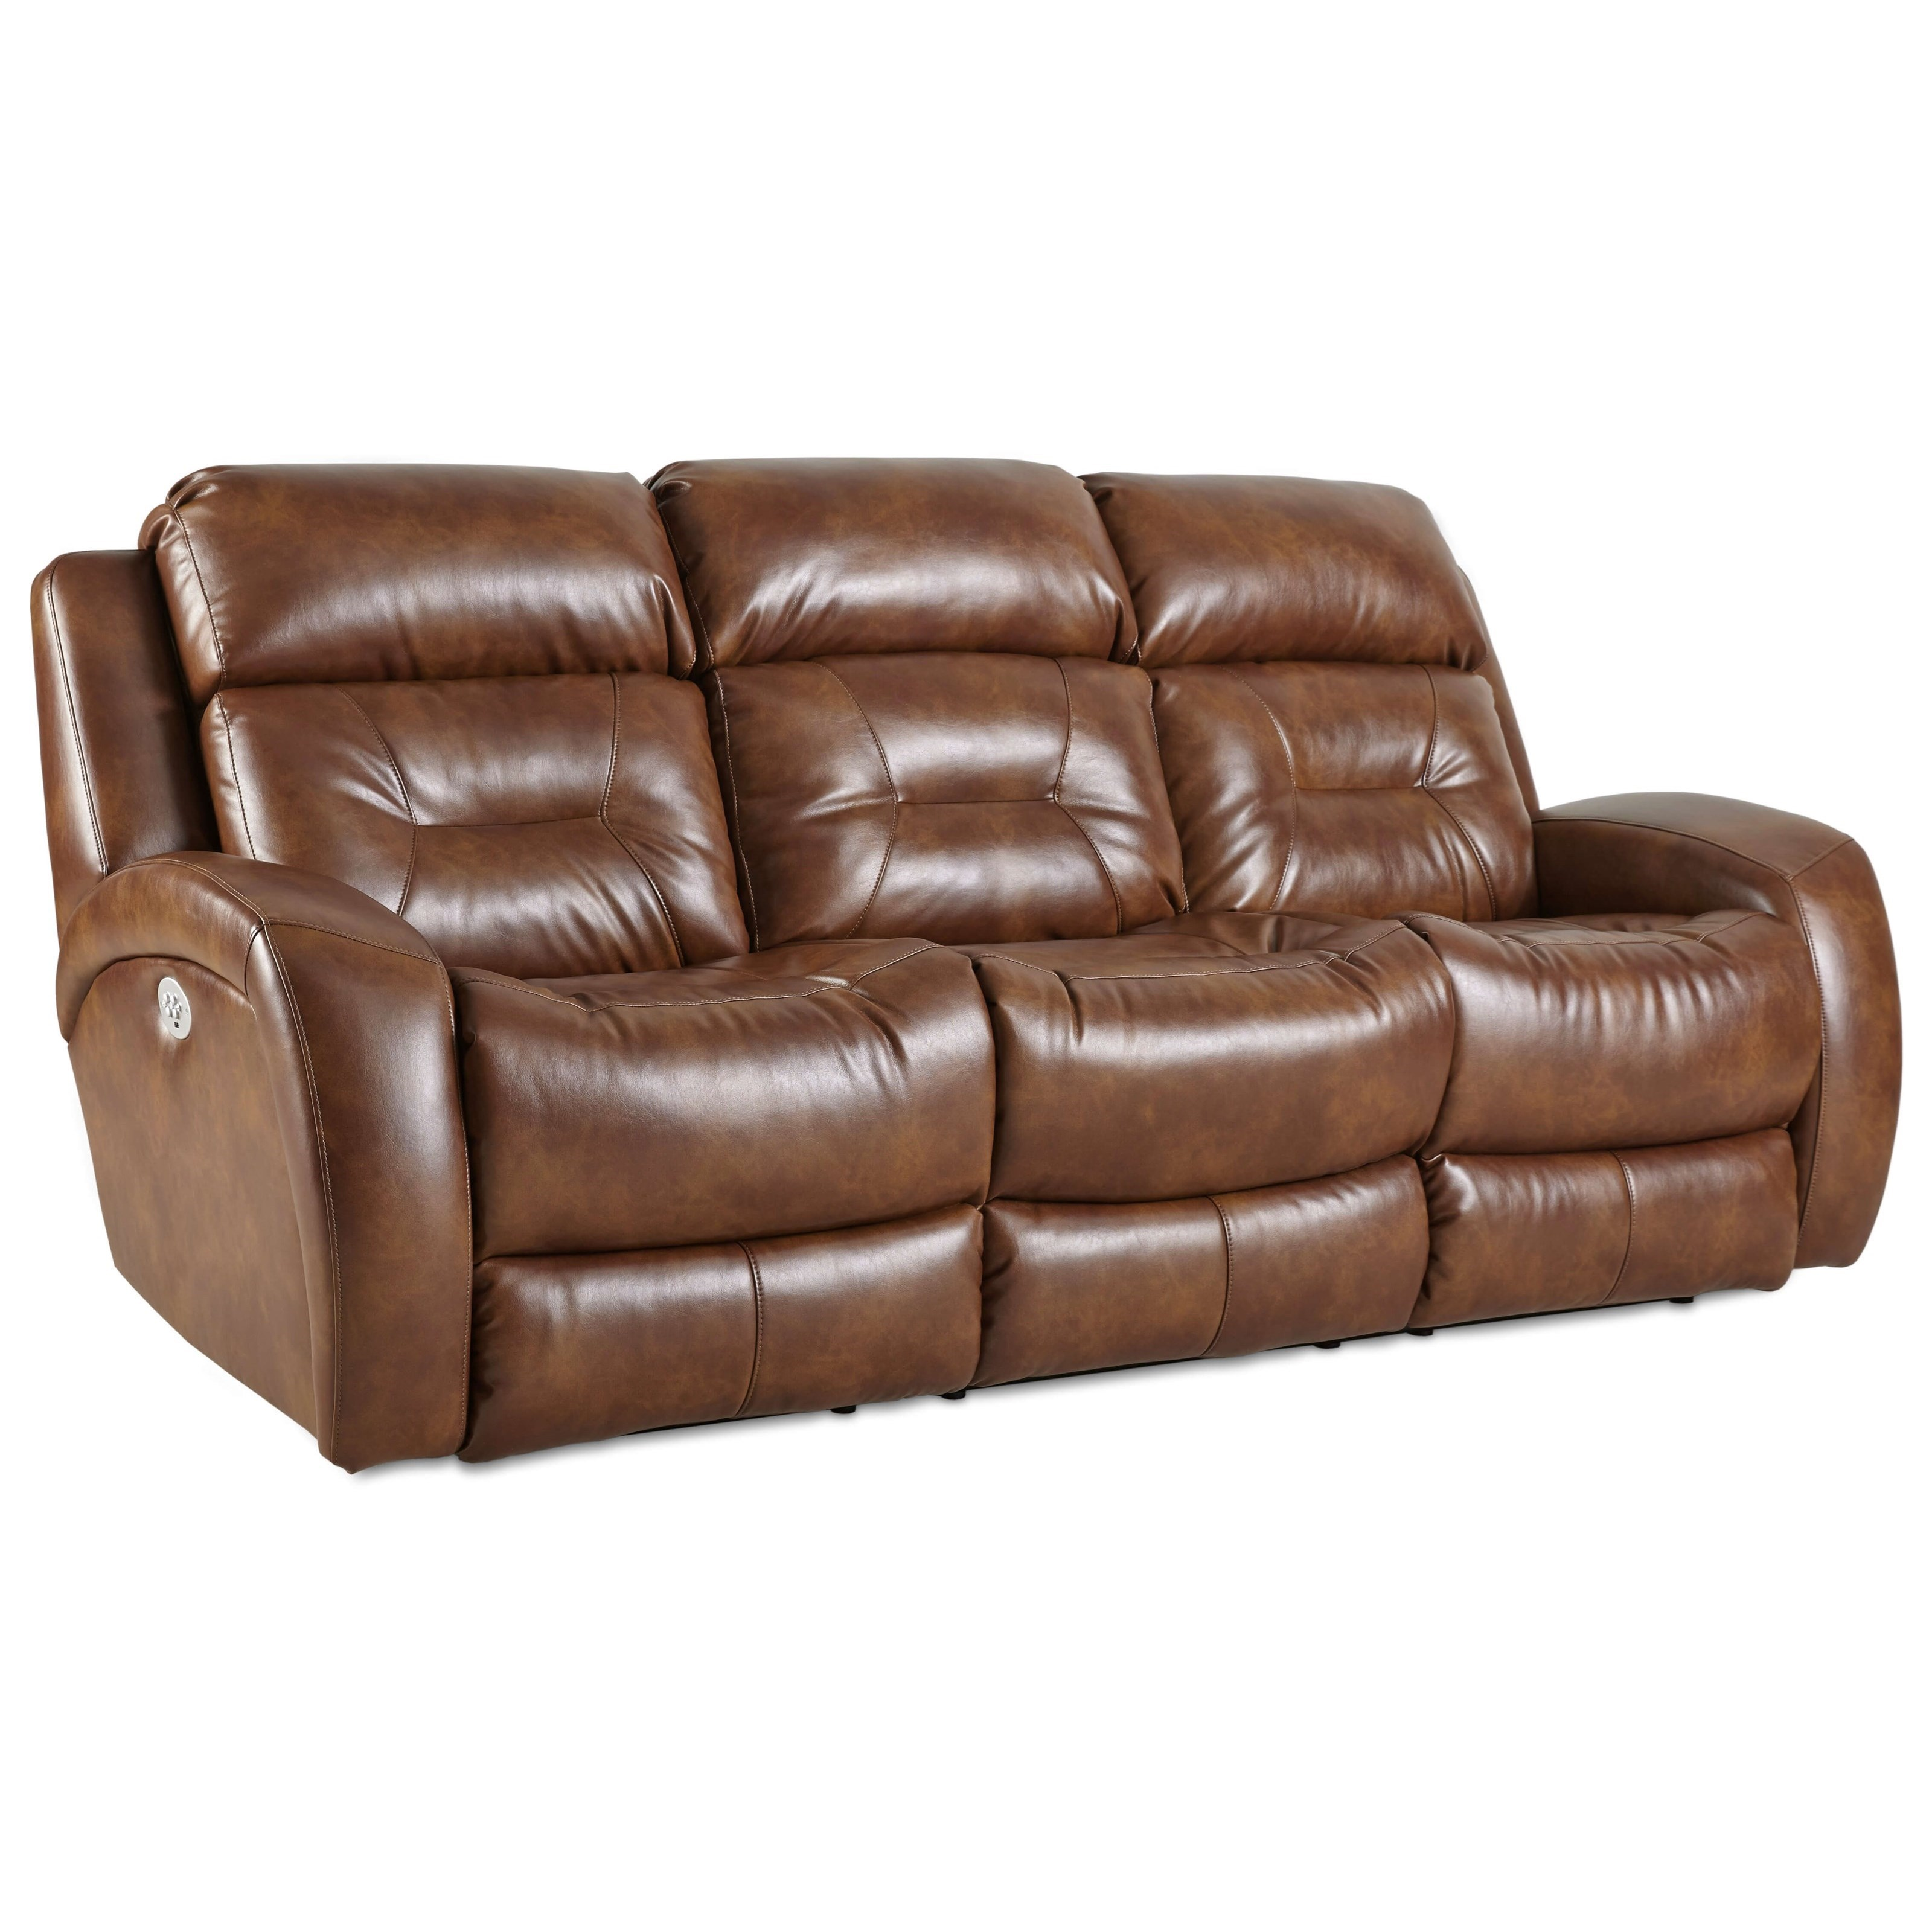 Ordinaire Southern Motion Showcase Double Reclining Sofa With Power Headrest